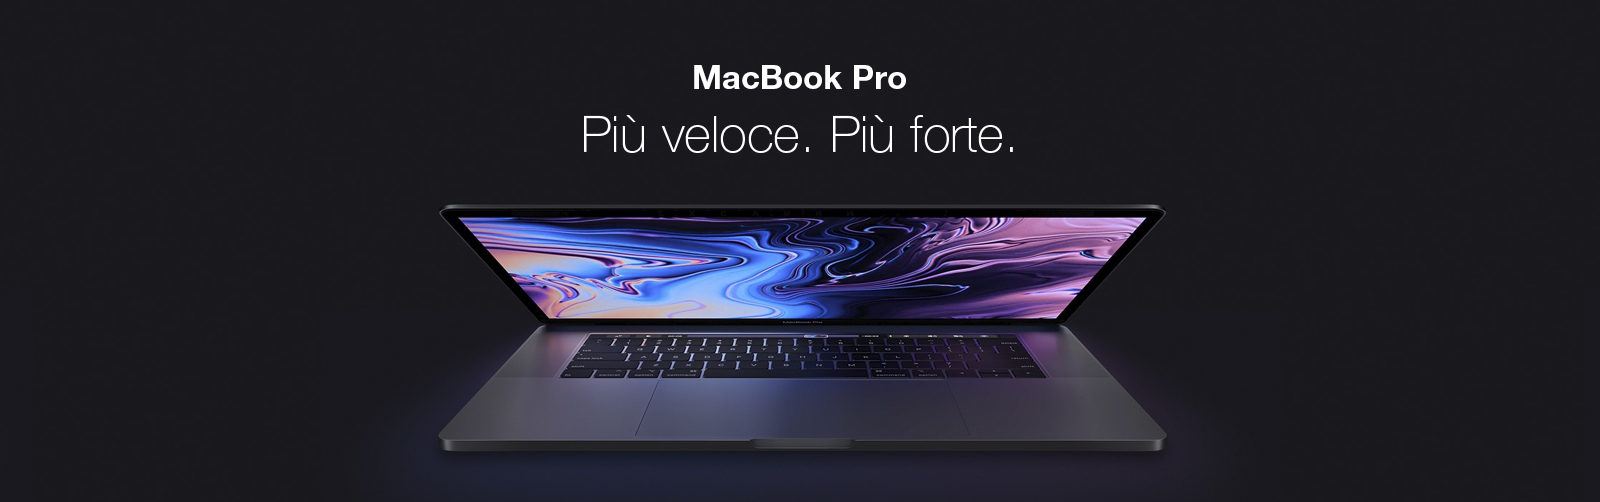 KW_37_2018_Apple_Macbook_Pro_IT.jpg